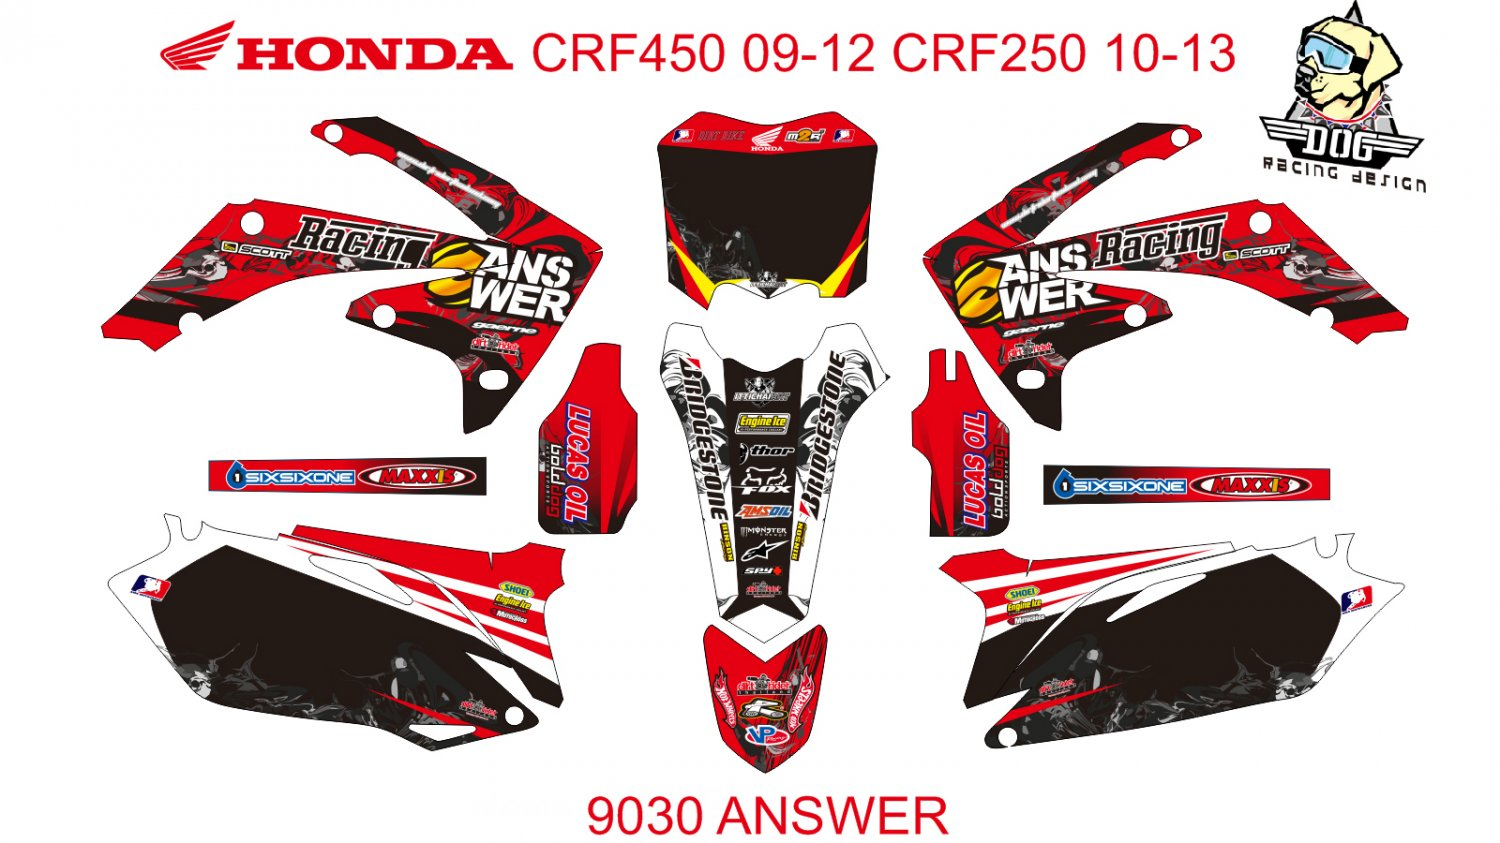 HONDA CRF 450 2009-2012 CRF 250 2010-2013 DECAL KIT CODE.9030